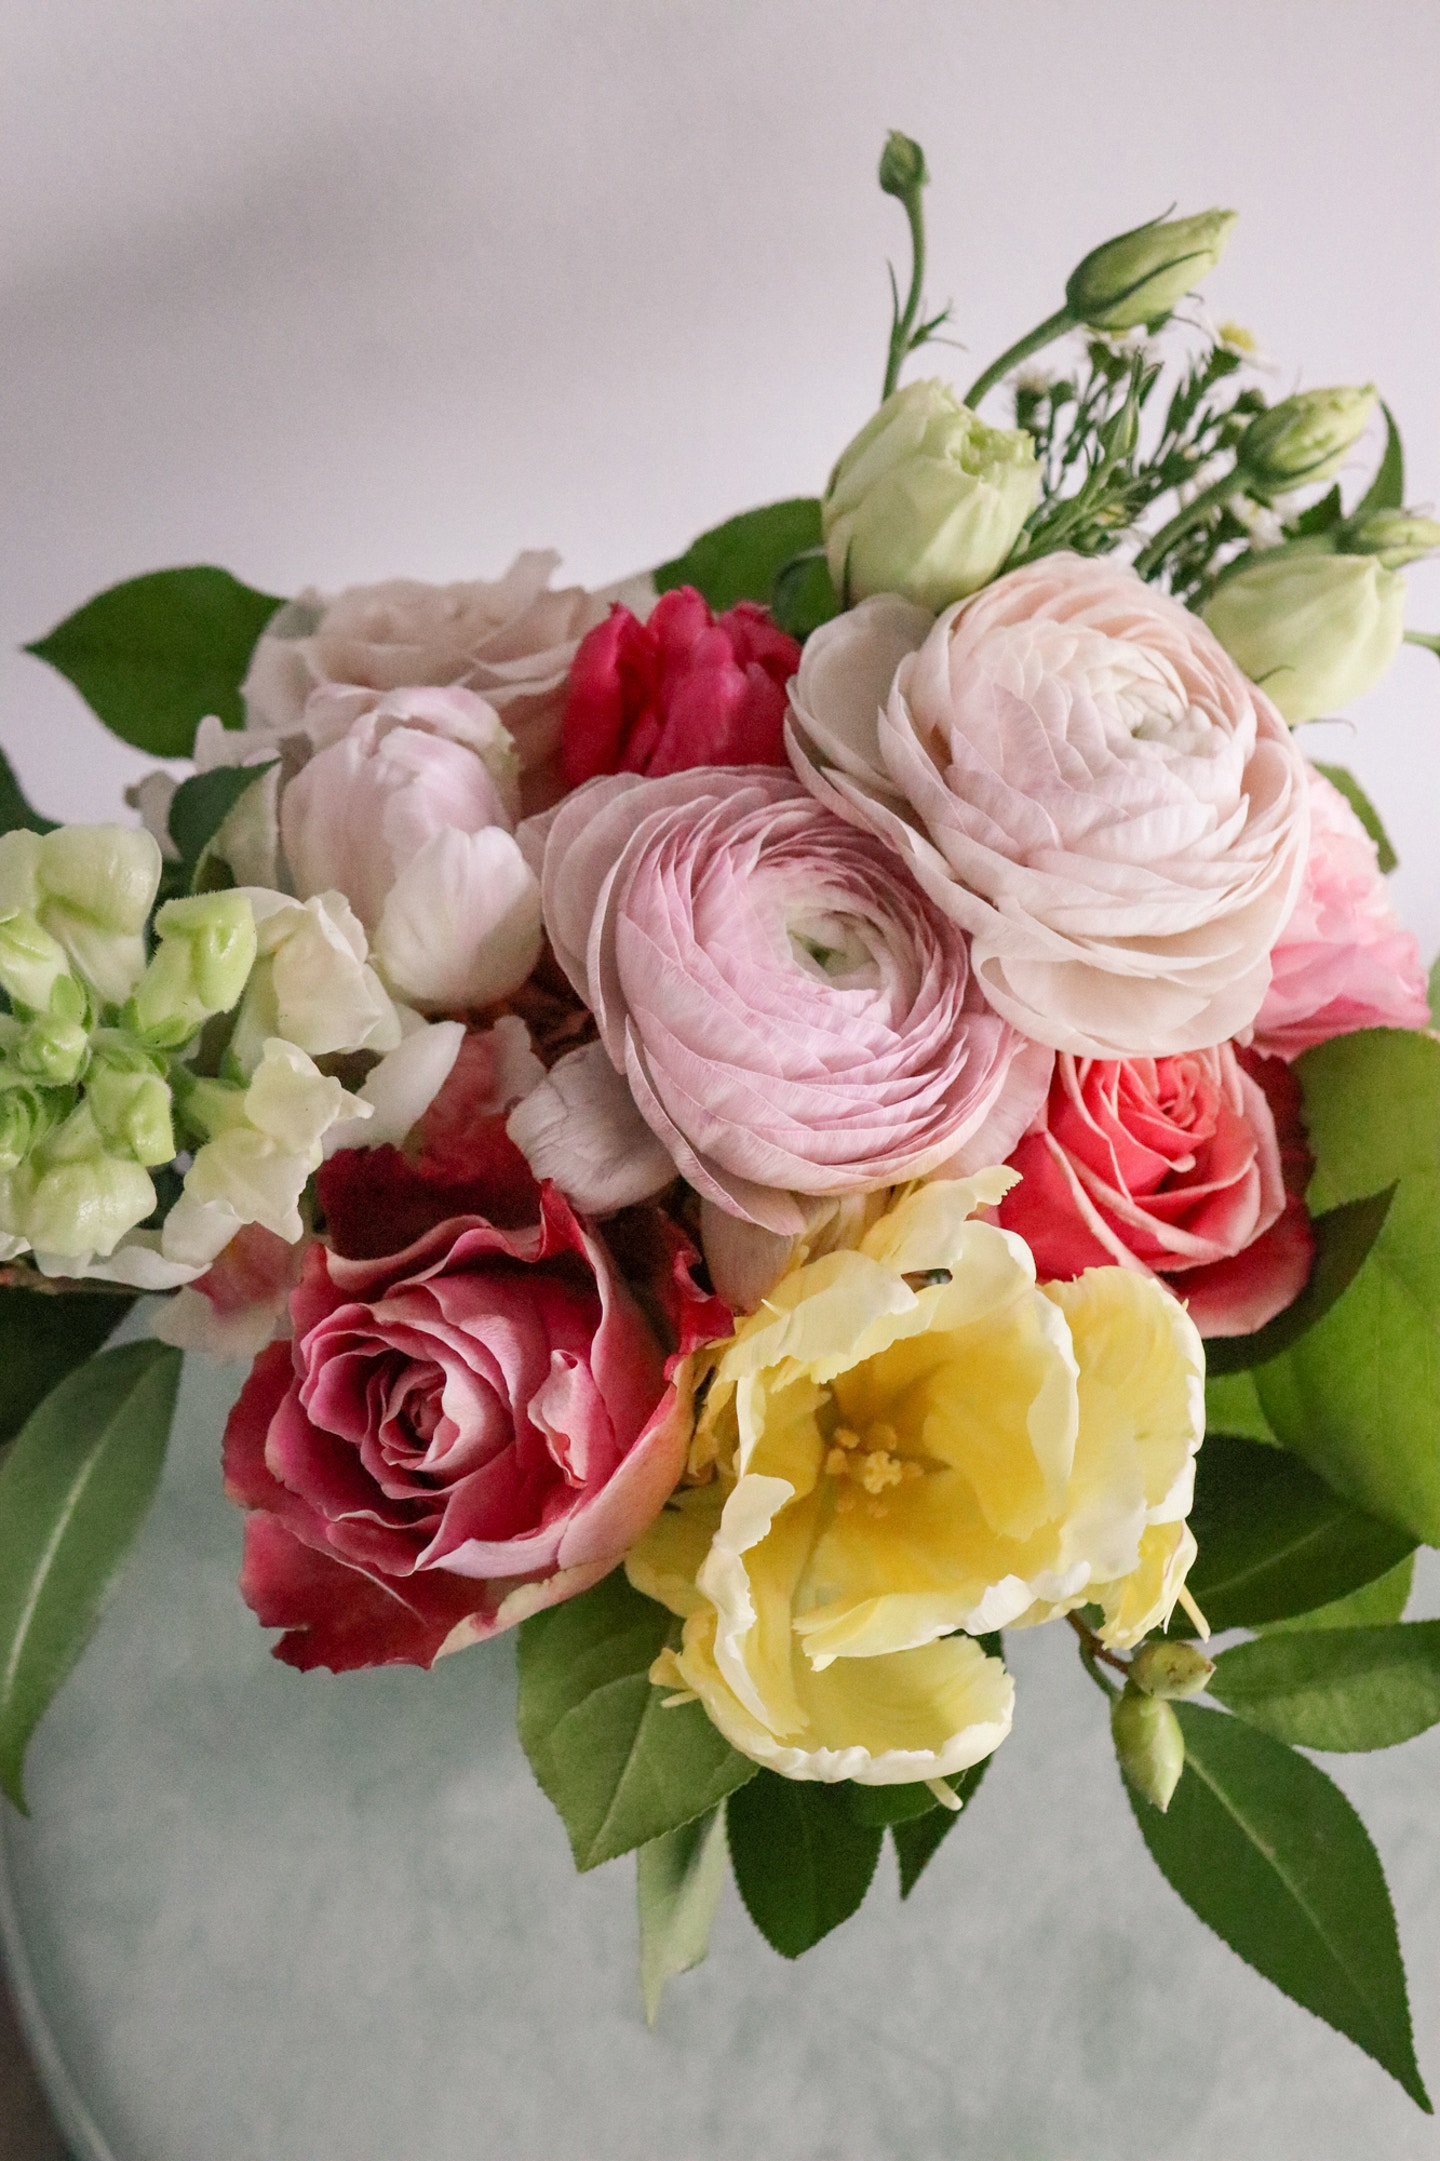 Brave Blooms Floral Subscription is a perfect mother's day gift idea!